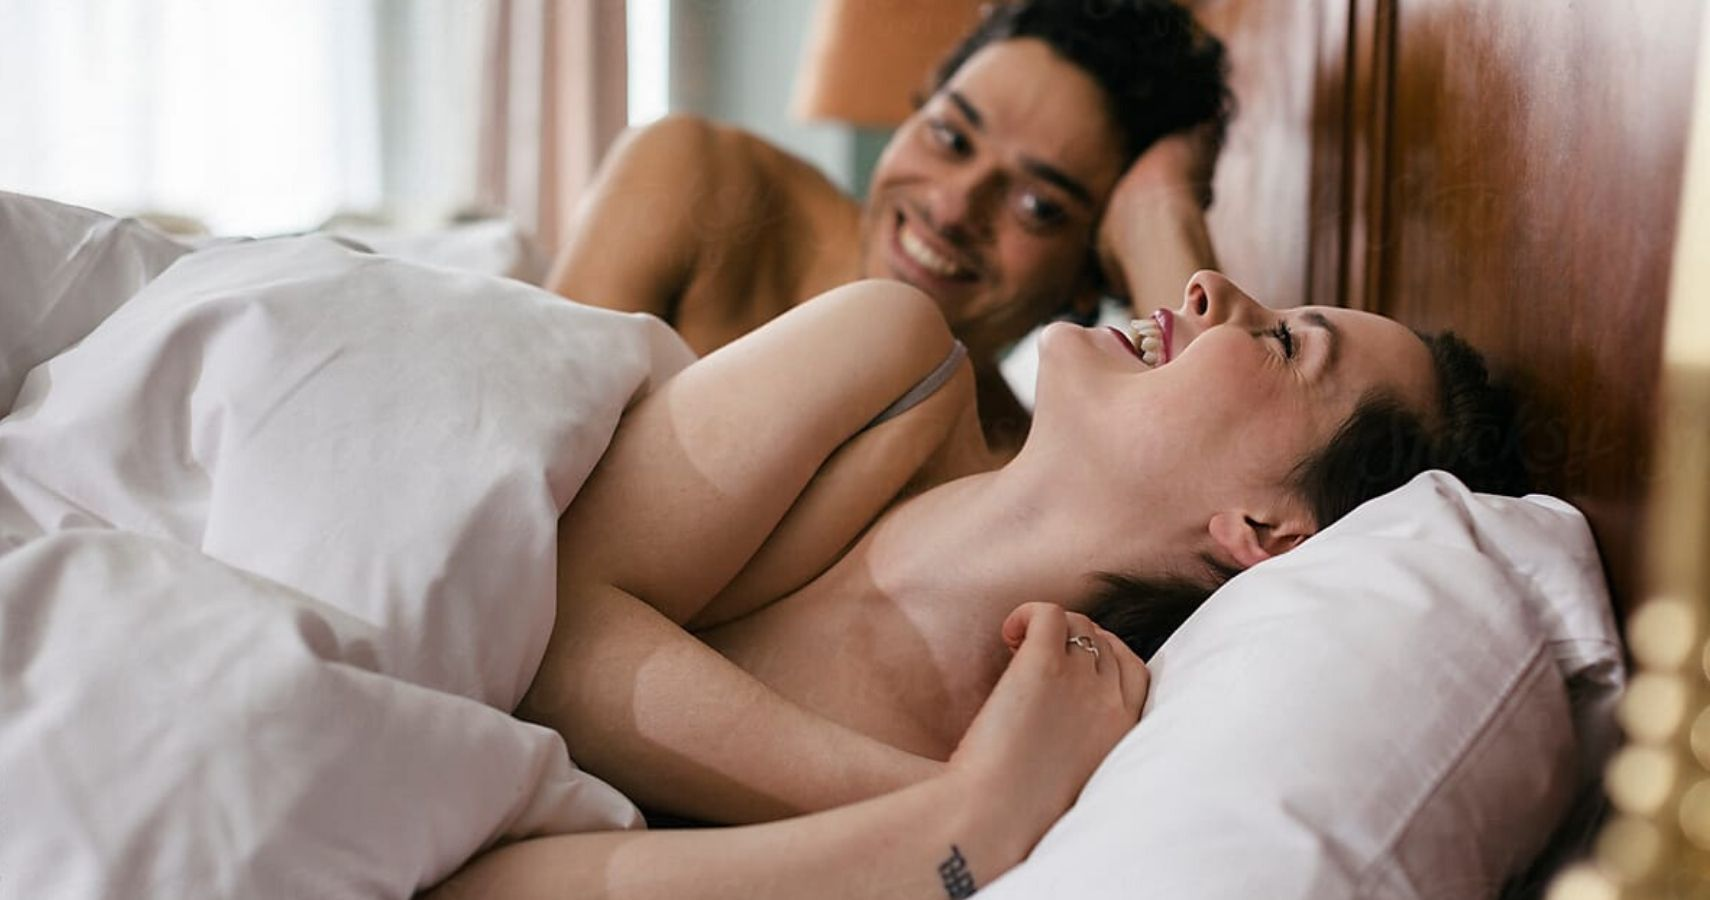 Avoid sex on the first date with these airtight excuses sheknows